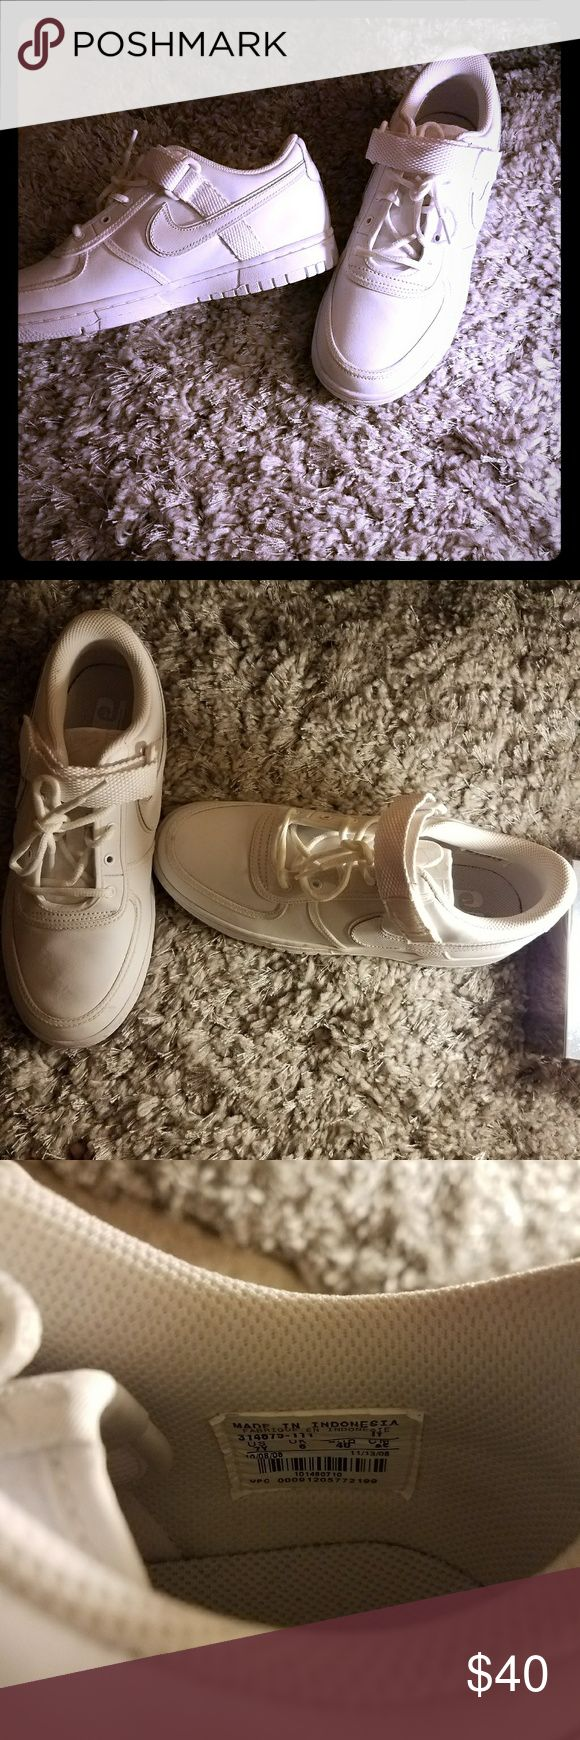 Nike casual Shoes for boys/women This all white shoe is a classic style that goes well with jeans and a t-shirt. Although they are a 7 in youth, a women with an 8.5 shoe size can fit these as well. Never worn, a few light black Marks on the soles due to packing/moving. Nike Shoes Sneakers